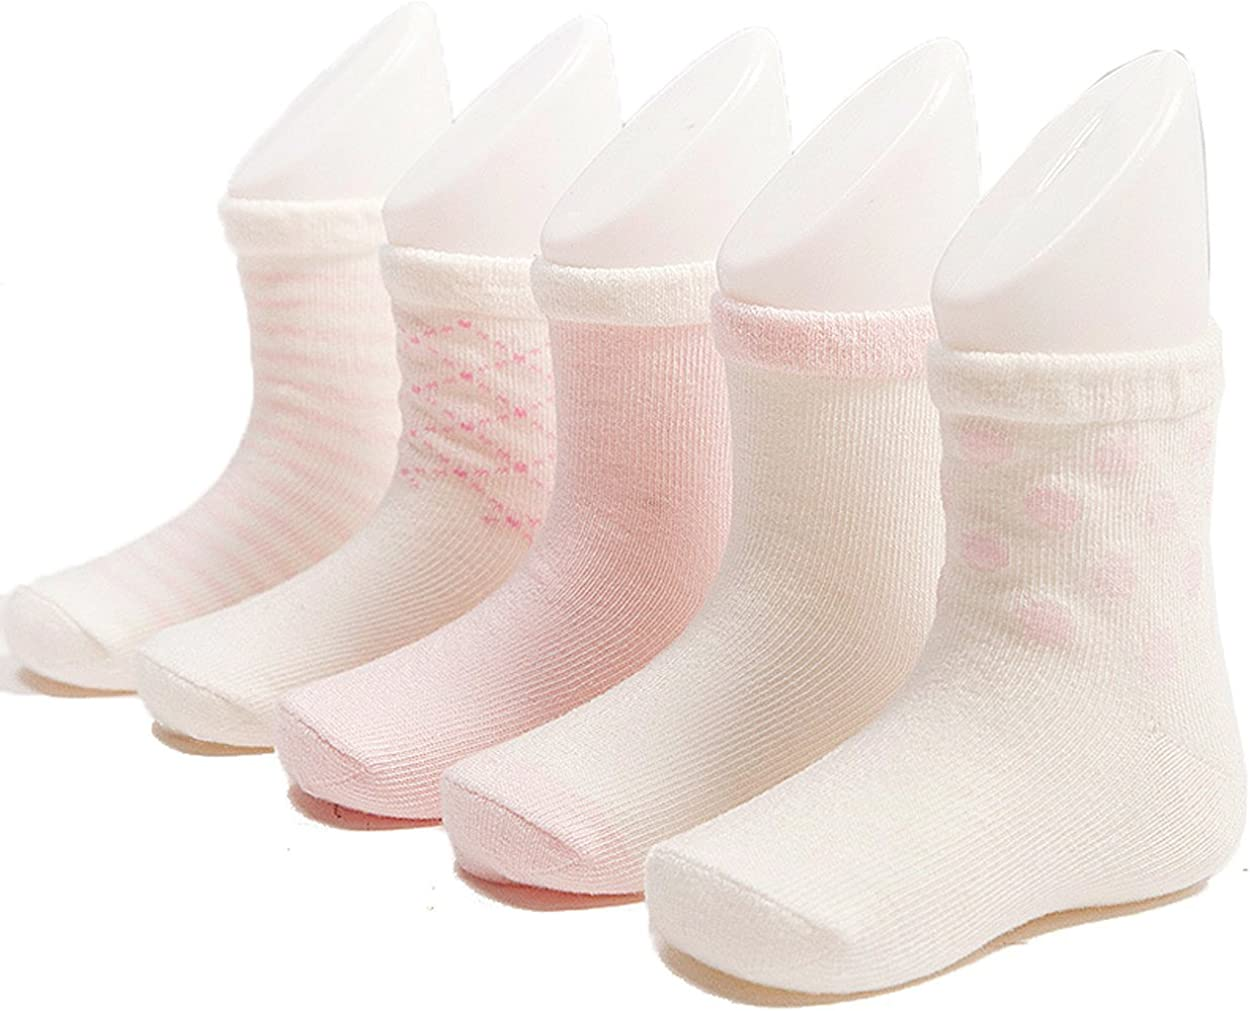 Century Star Baby Infant Toddler Boys Grils Lovely 5 Pairs Basic Comfort Seamless Socks